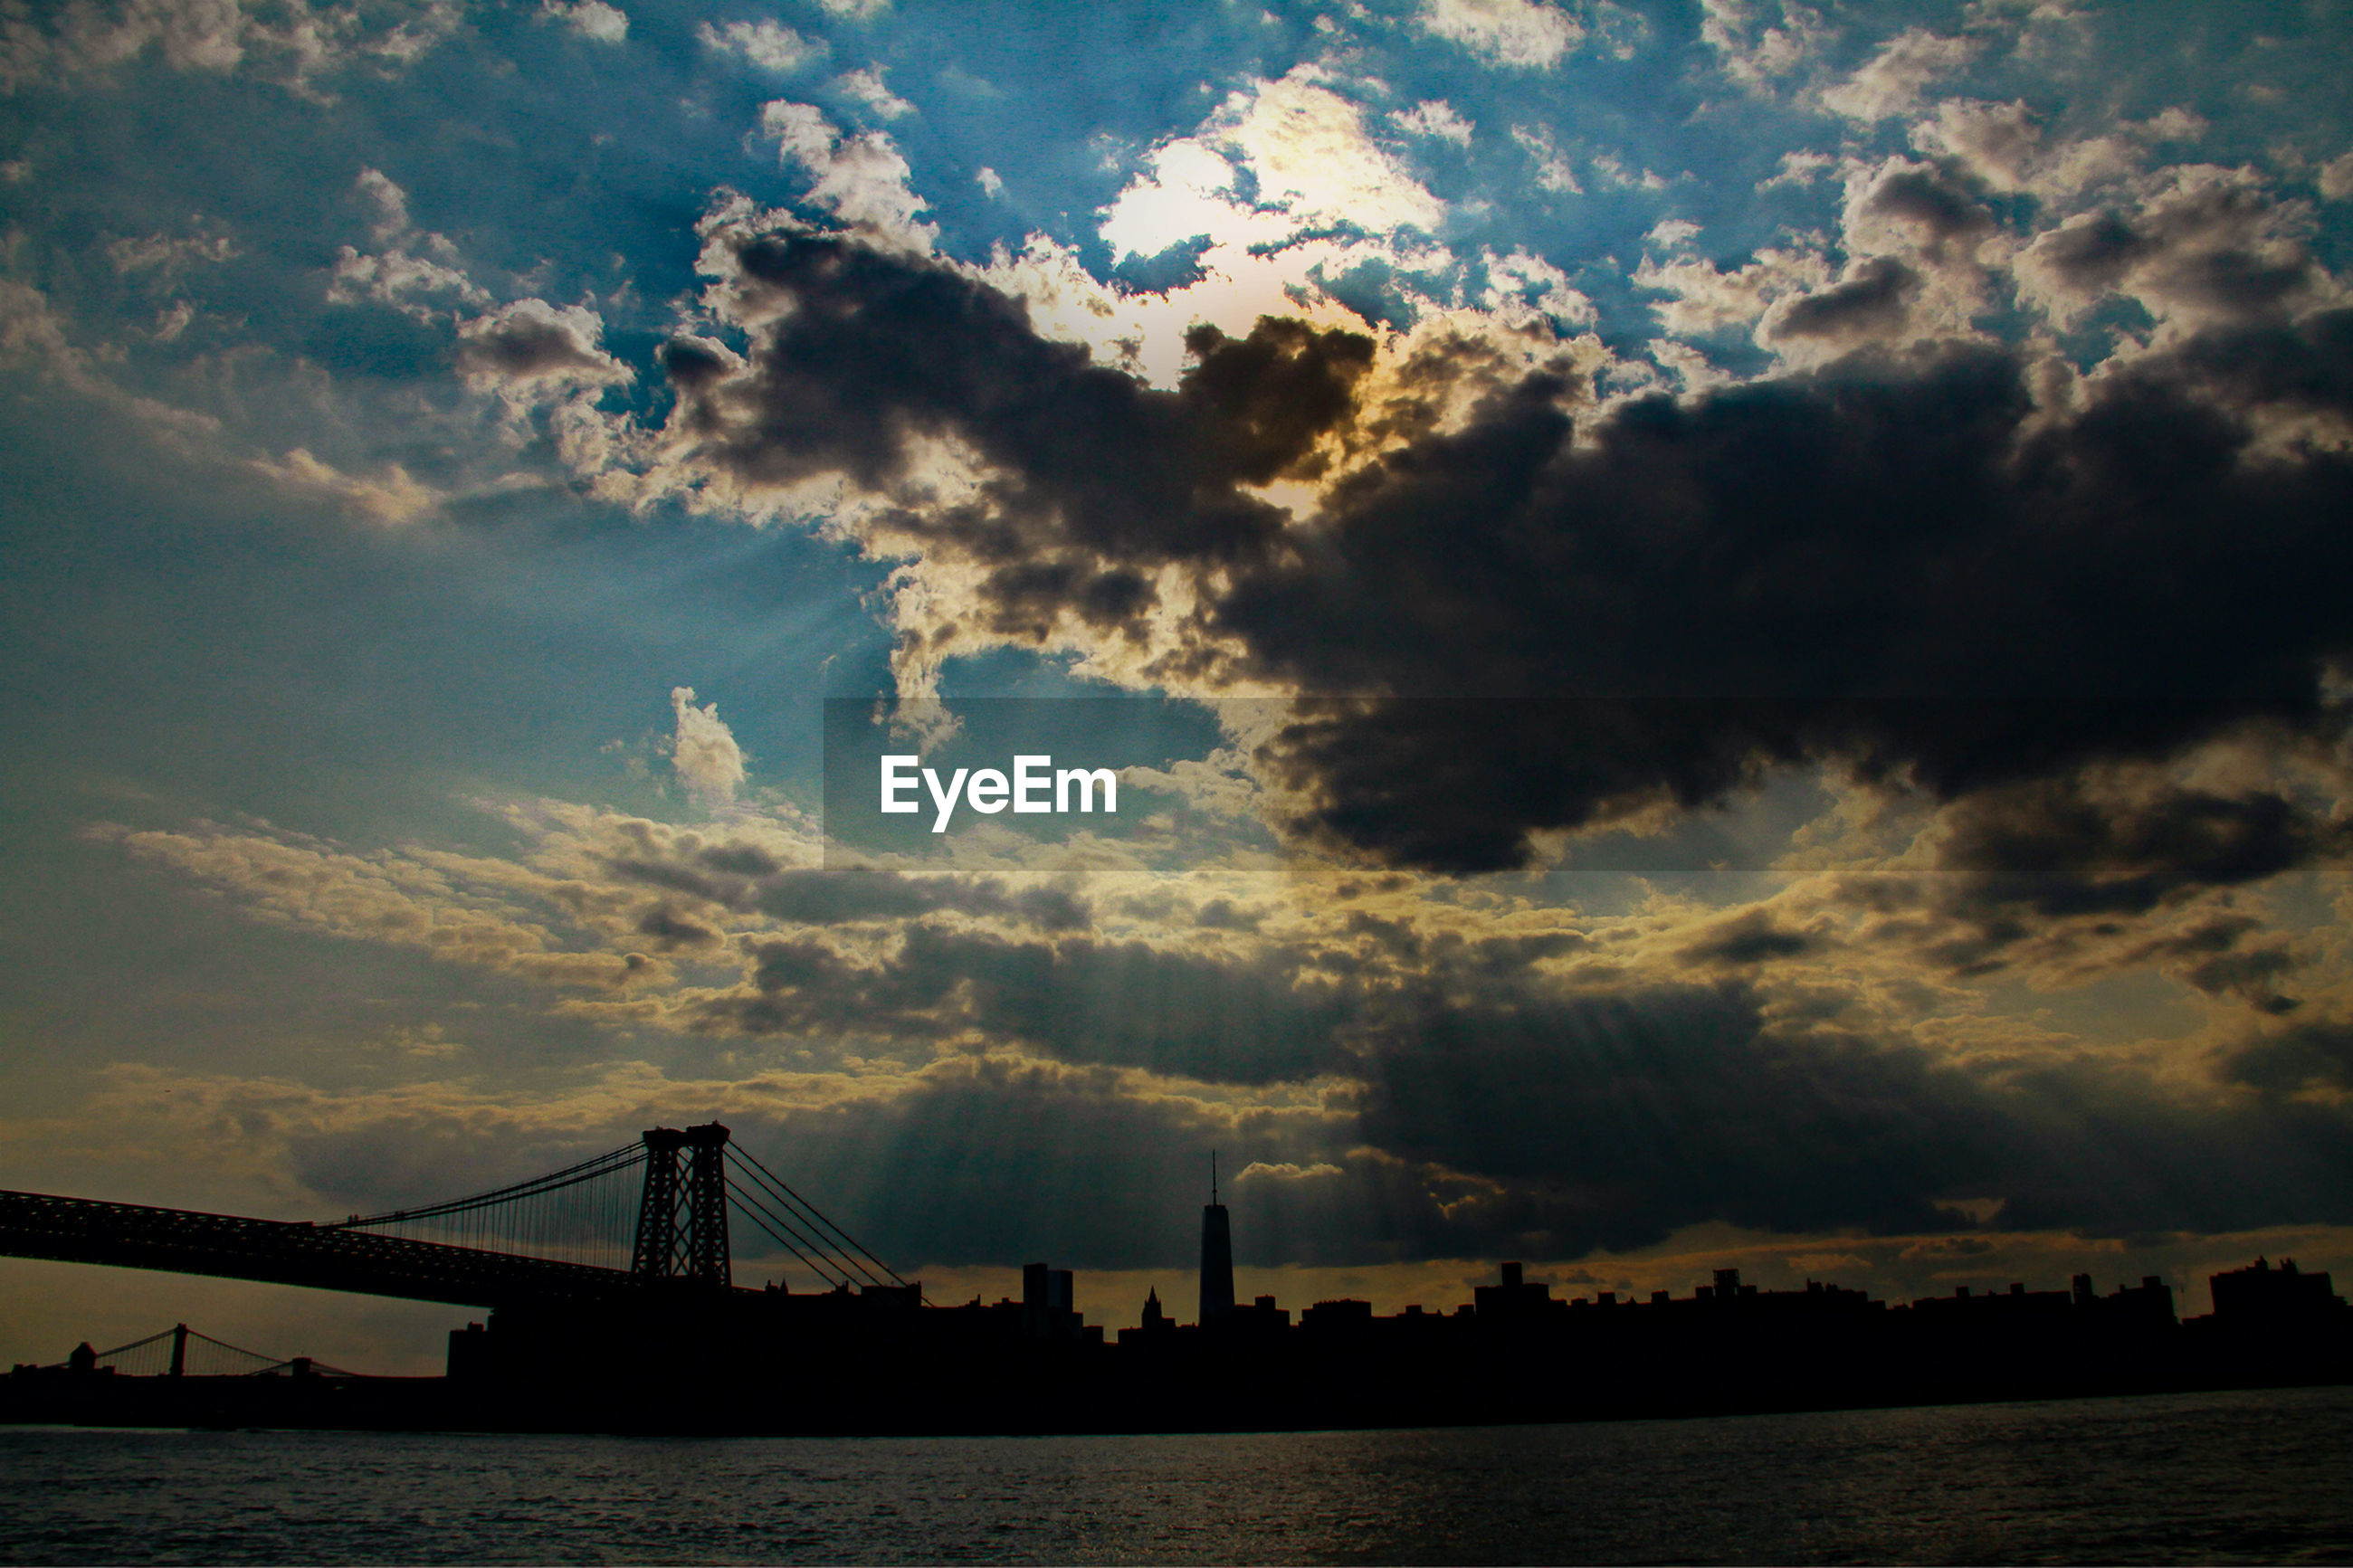 Low angle view of silhouette williamsburg bridge over sea against cloudy sky in city